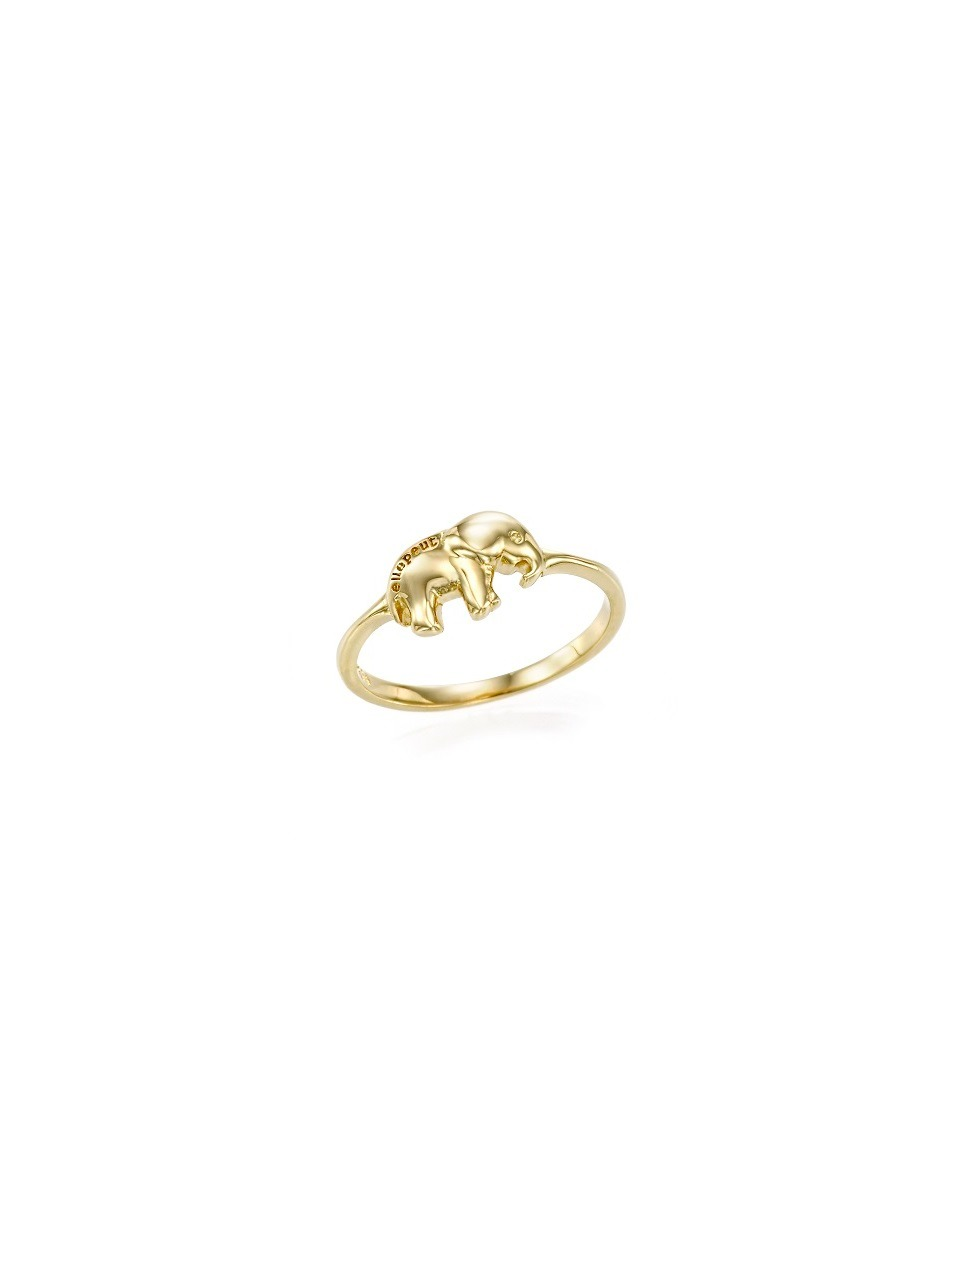 ELEPHANTTI RING/엘쁘